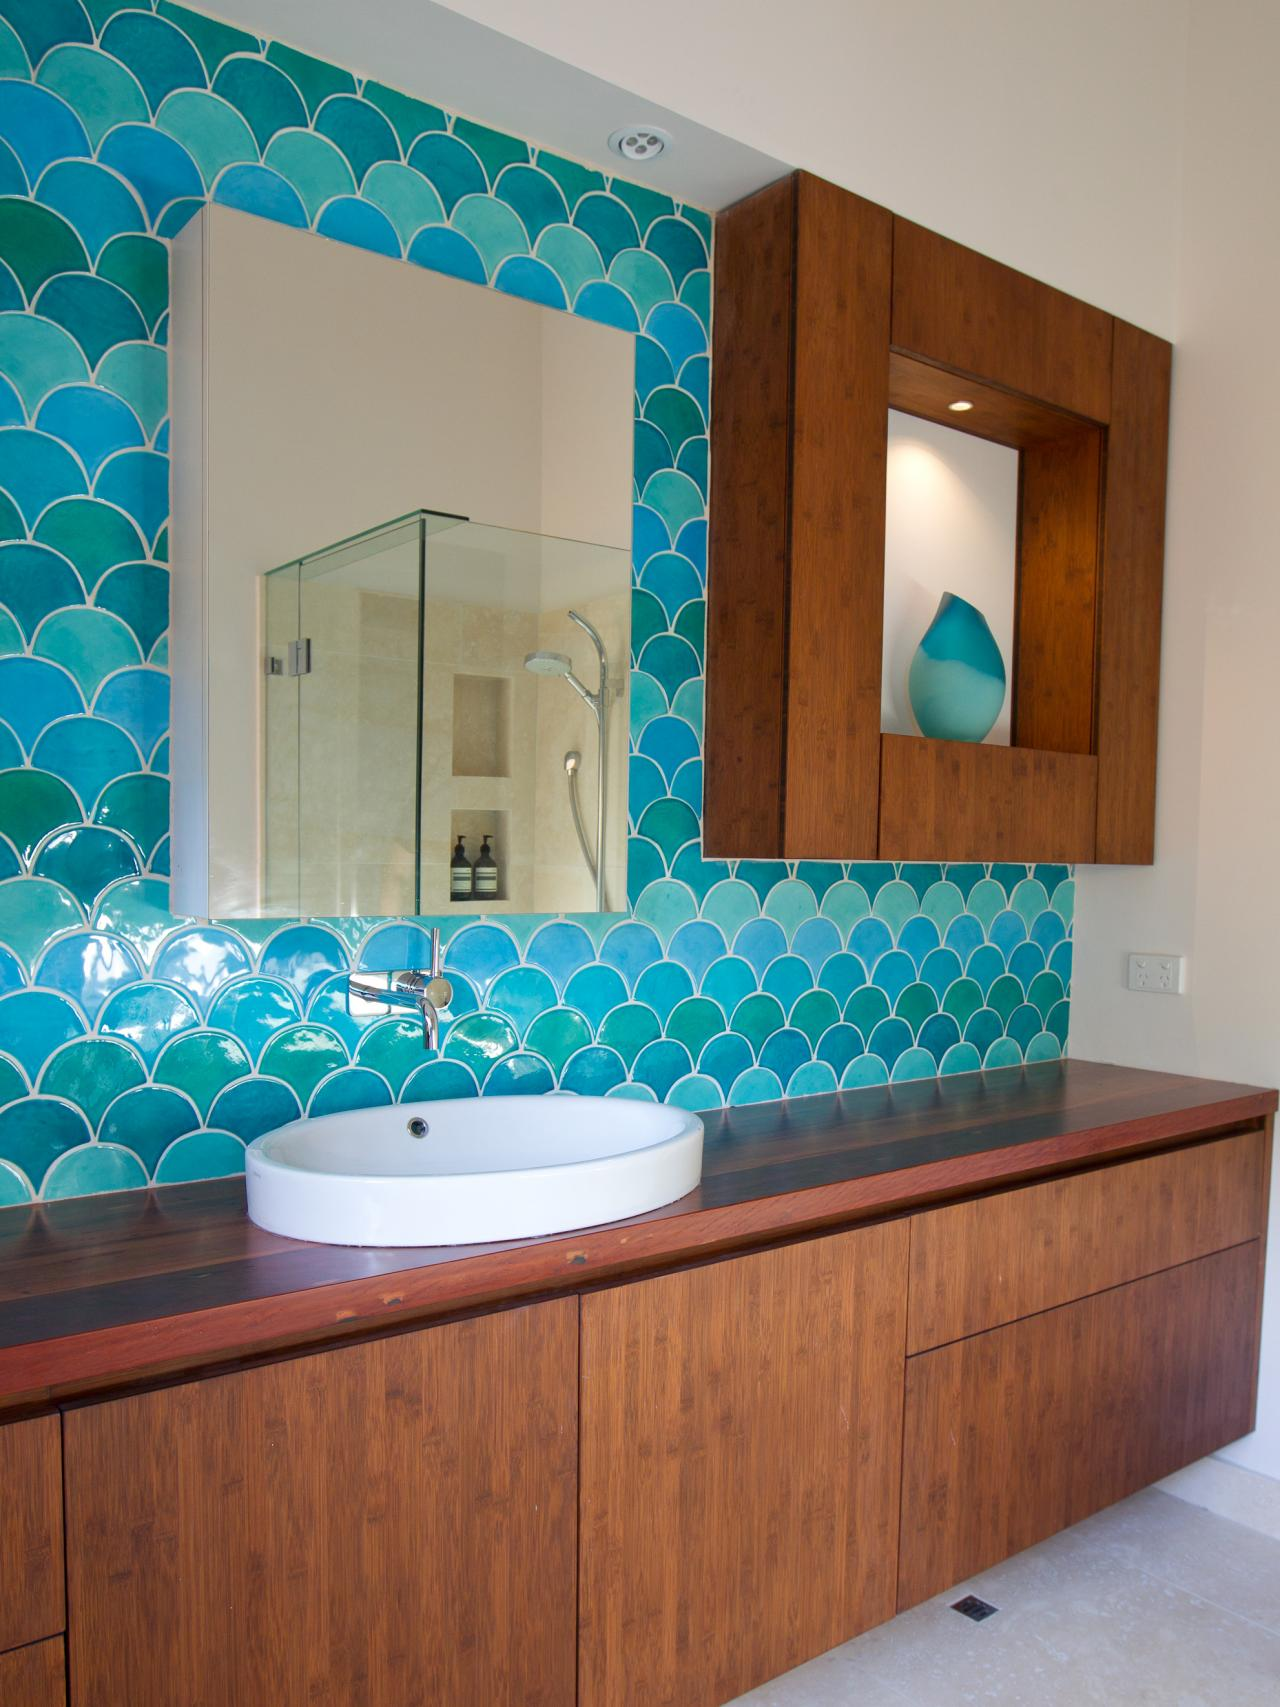 Bathroom Tiles And Paint Ideas bathroom color and paint ideas: pictures & tips from hgtv | hgtv